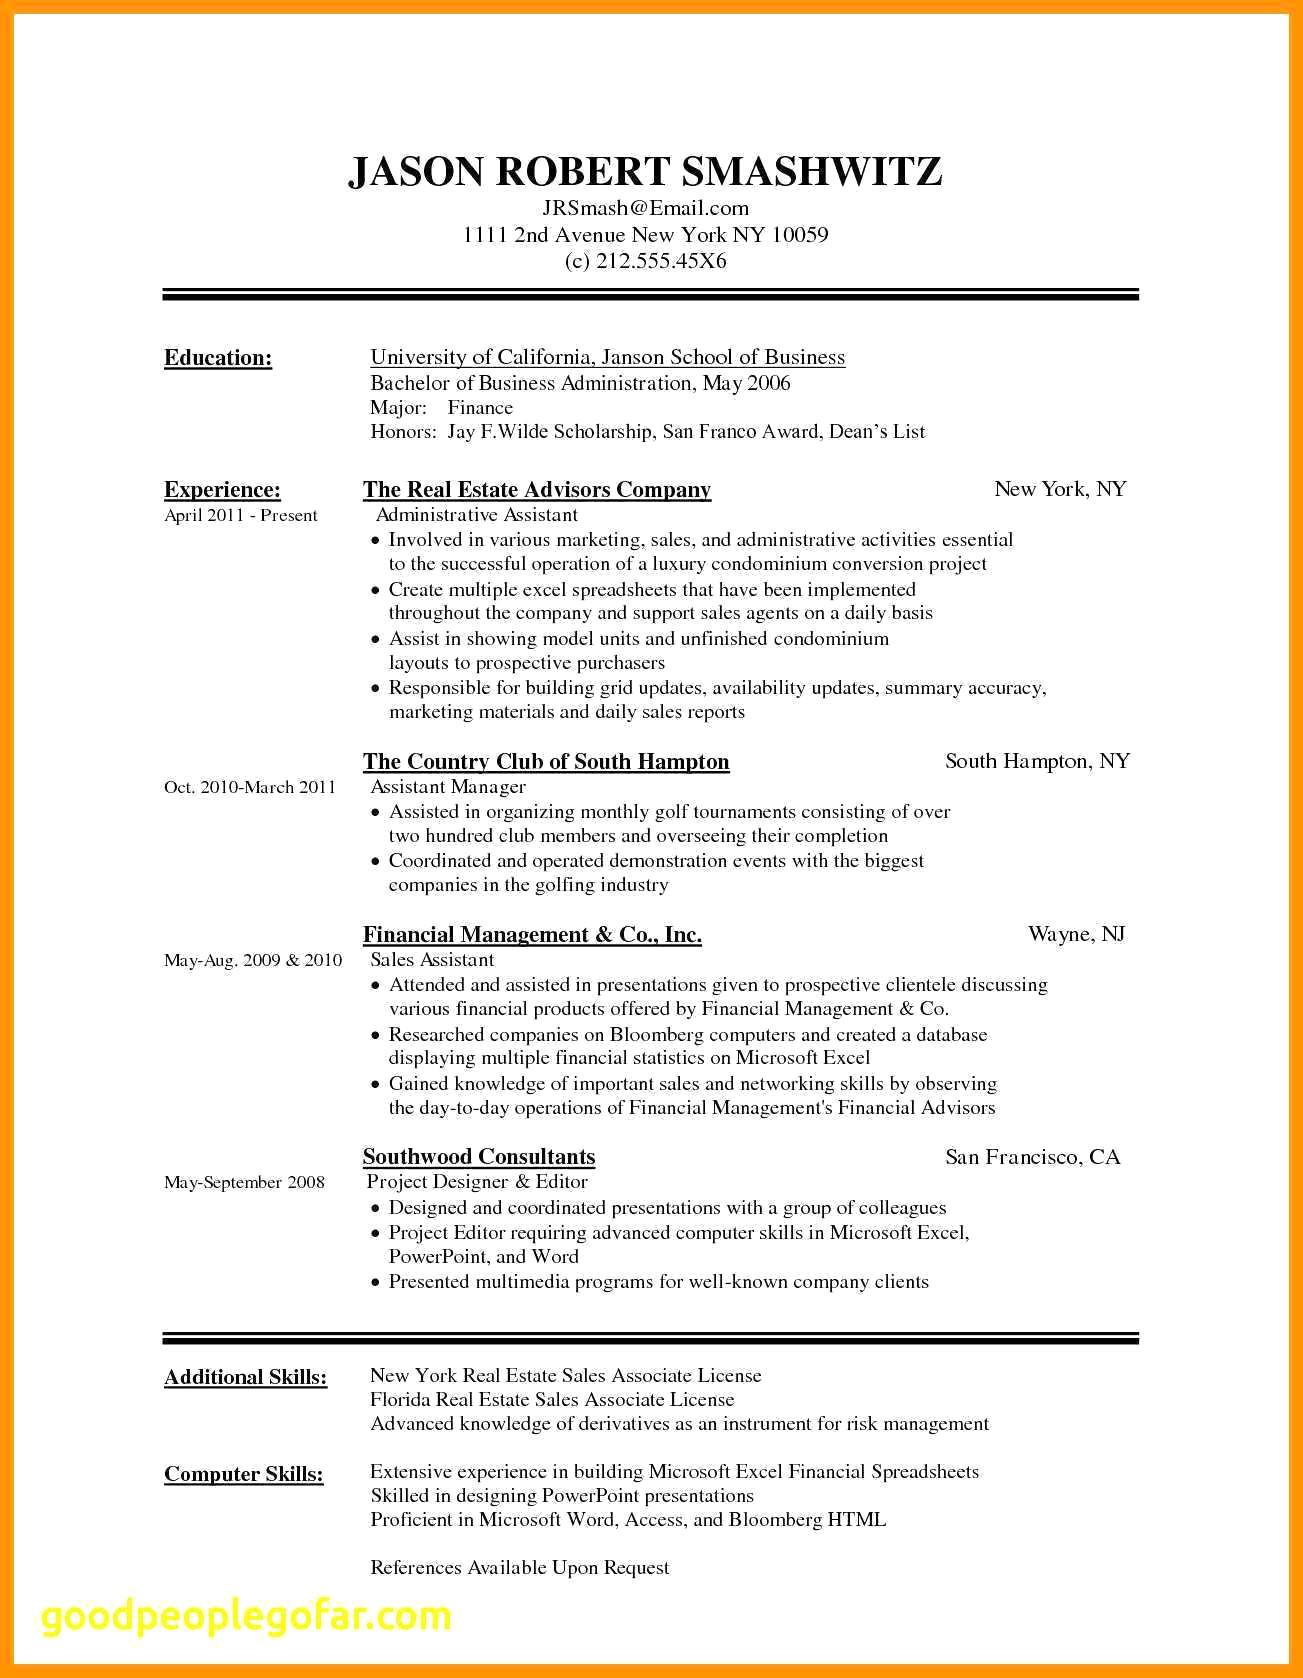 Resume Template In Word - 56 Design Download Resume Templates Word